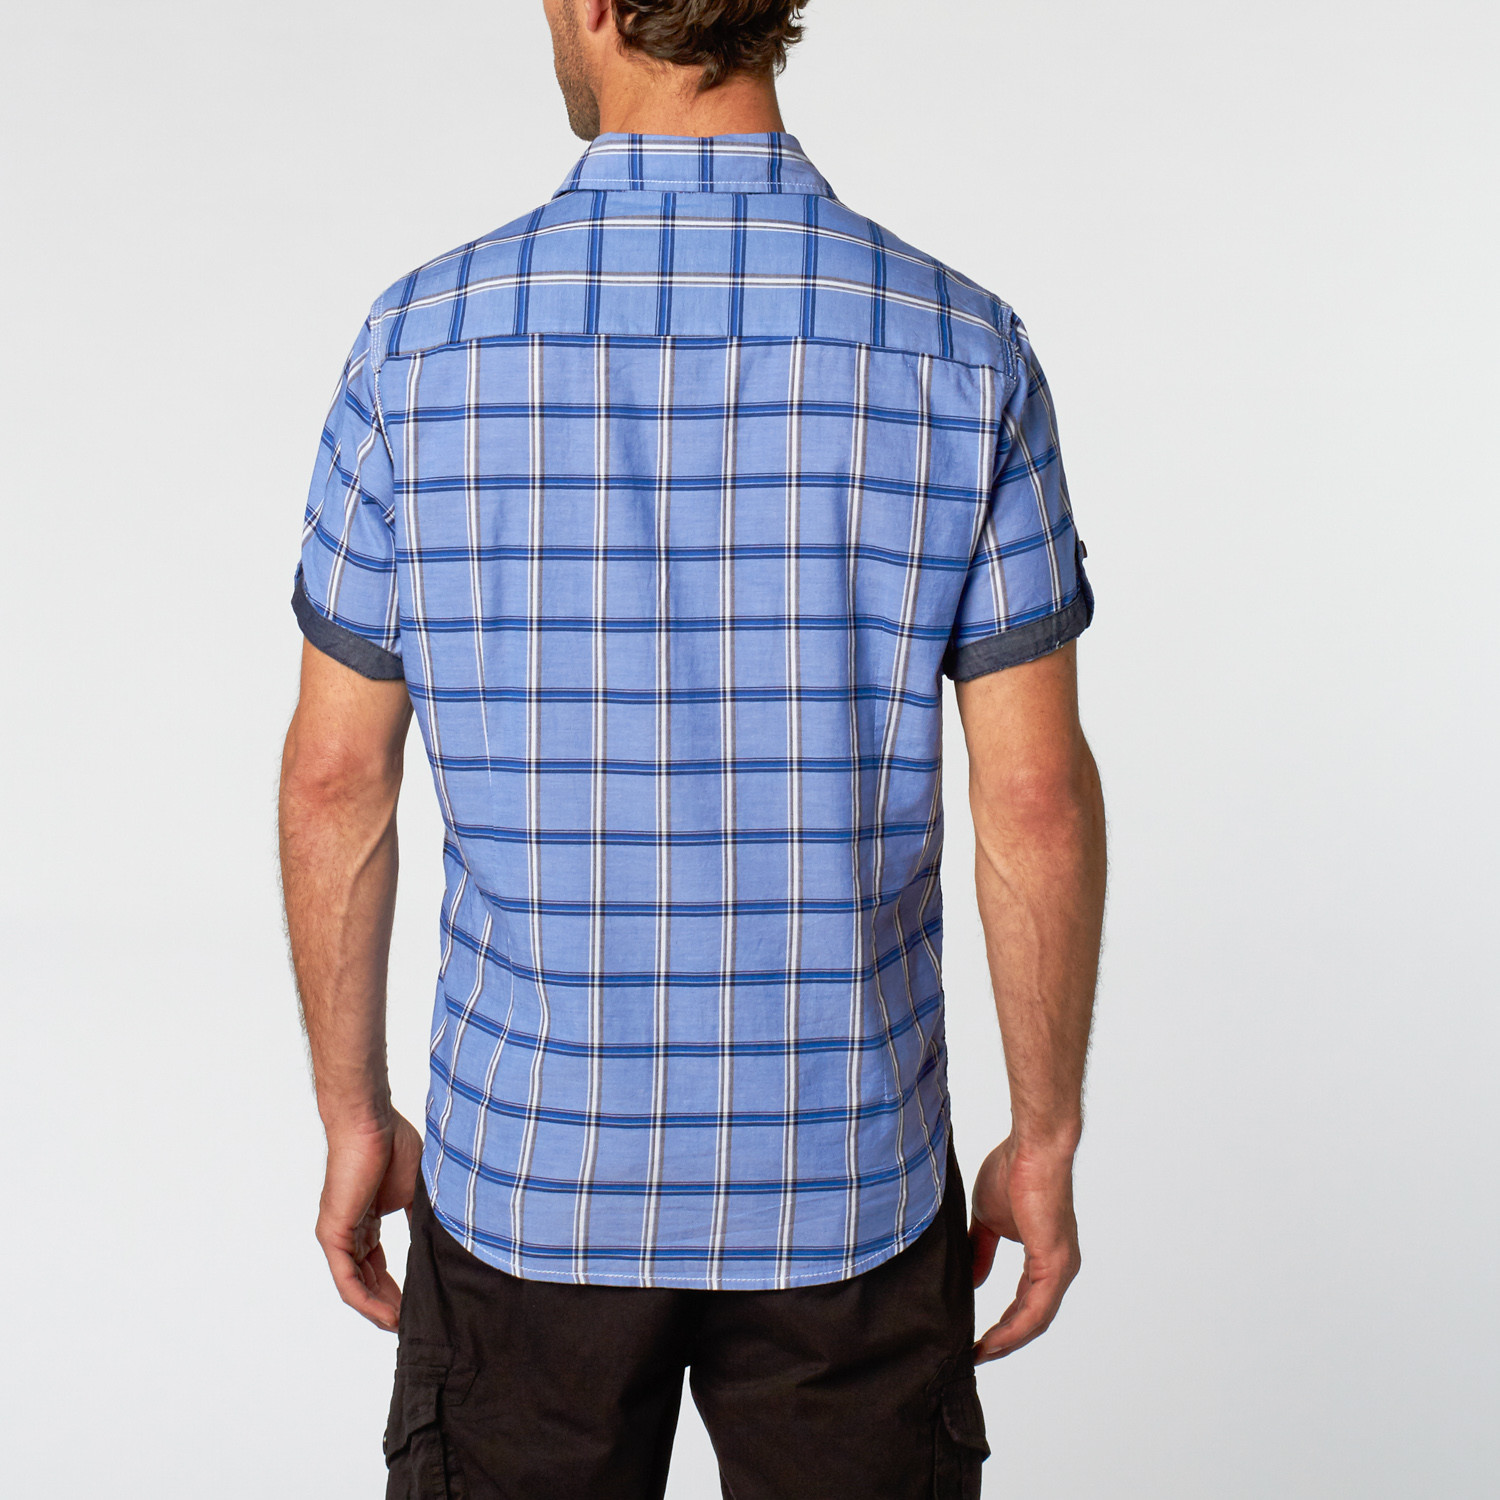 Short Sleeve Shirt Blue Plaid S Private Member